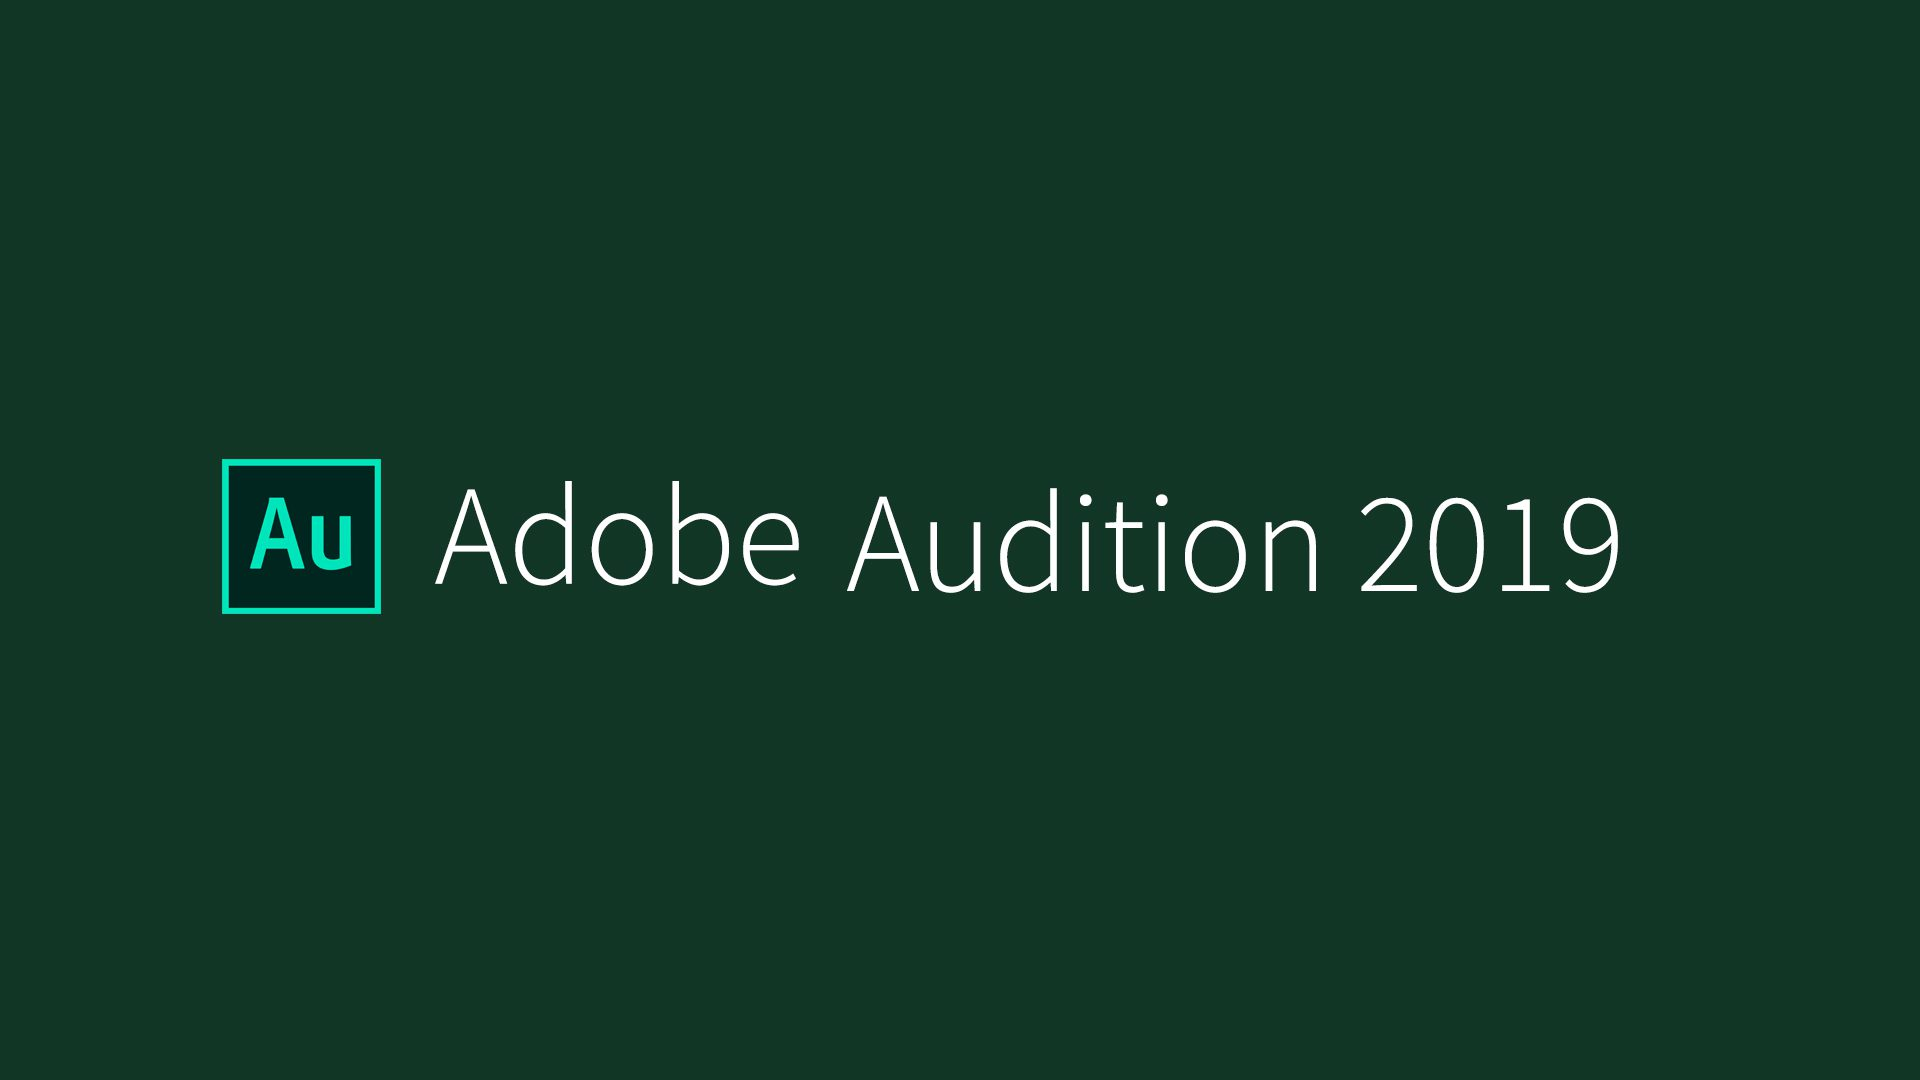 Adobe Audition CC 2019 Free Download v12.1.1.42